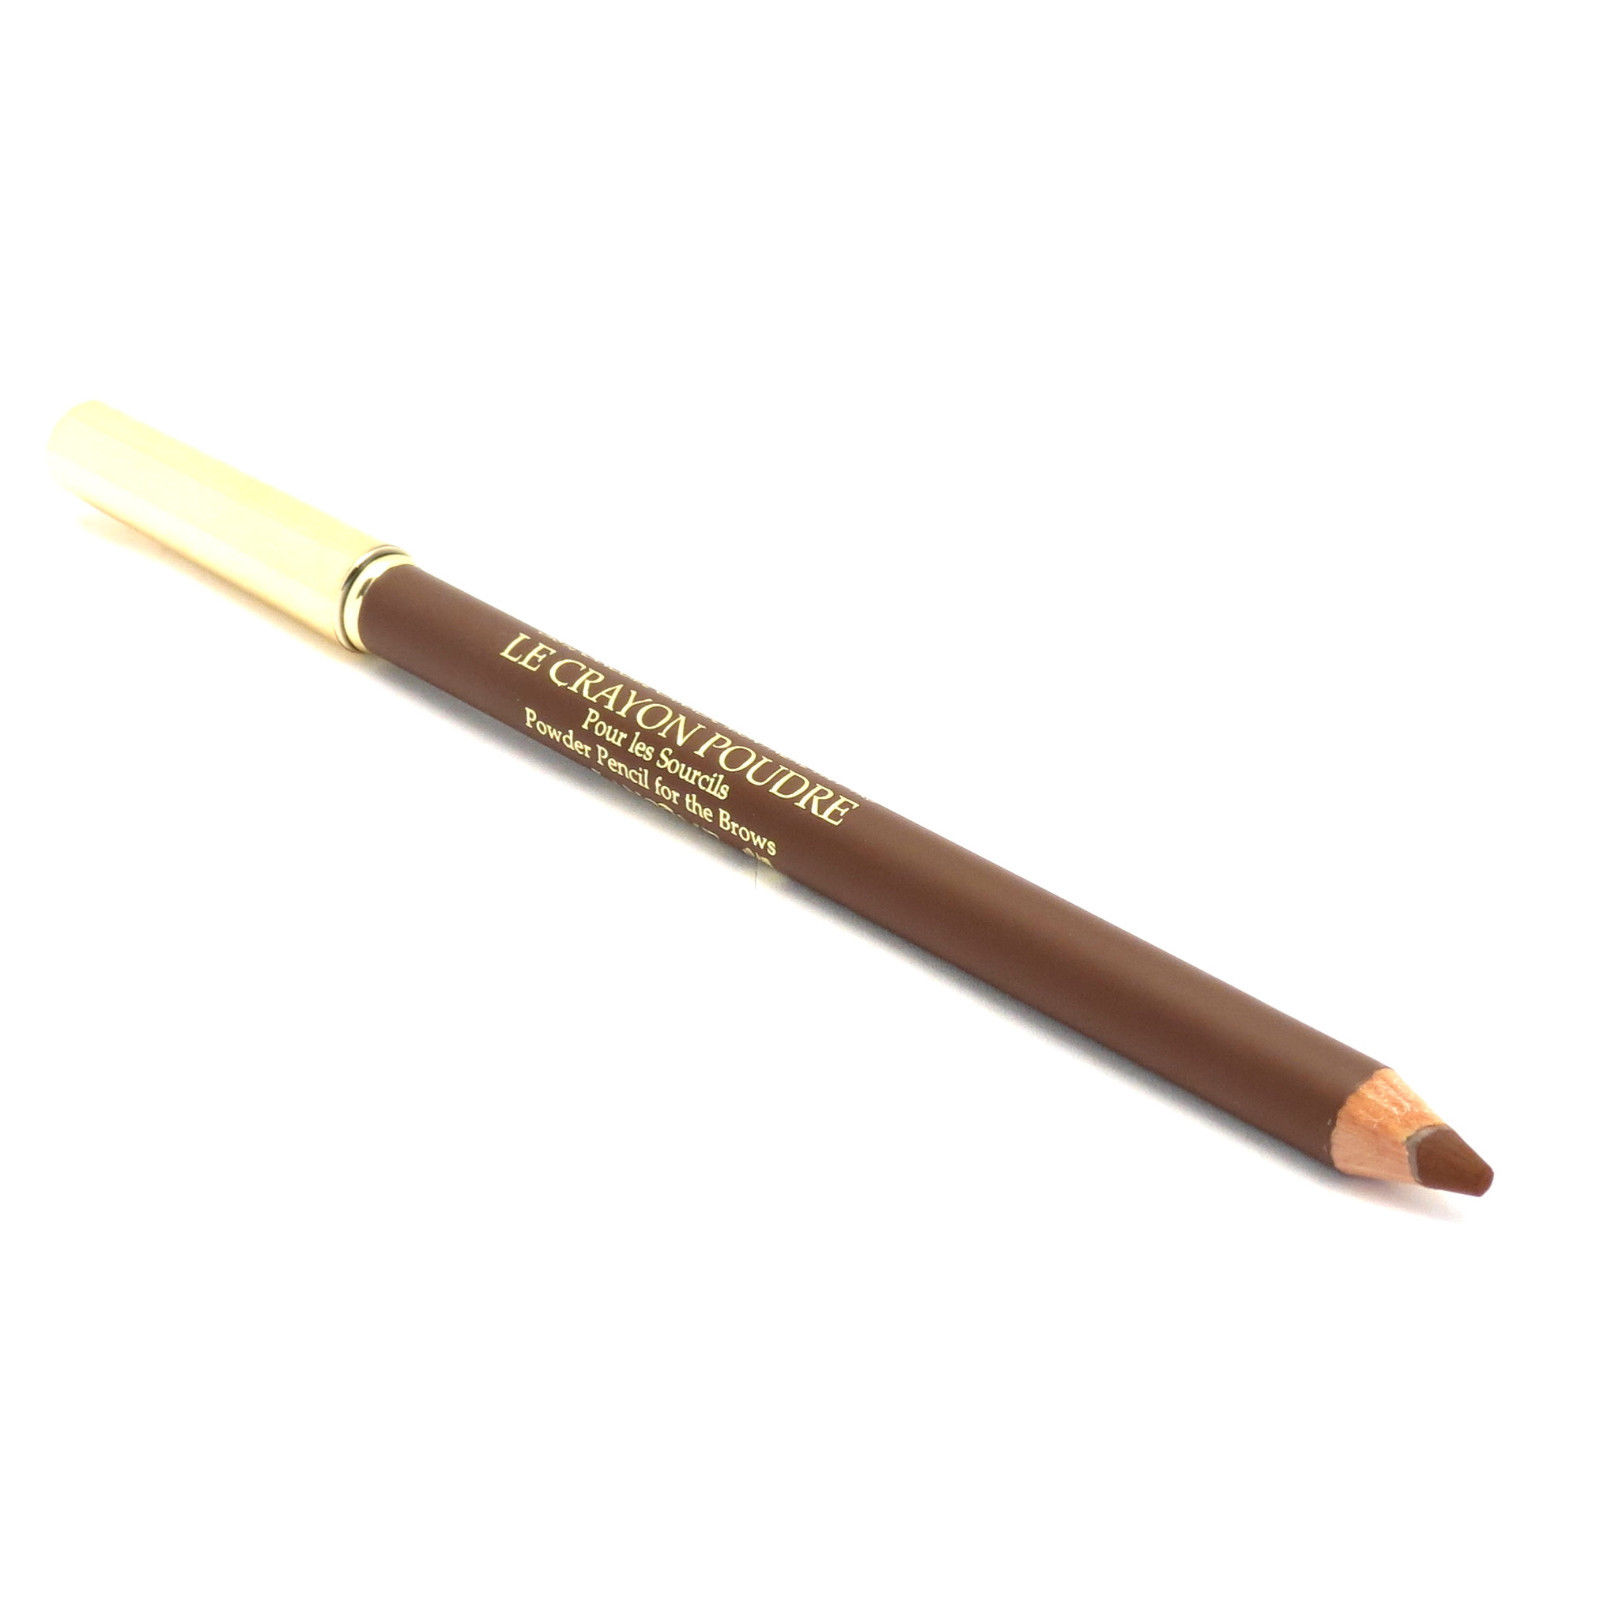 Lancome Le Crayon Poudre Powder Pencil for the Brows Brow with Brush